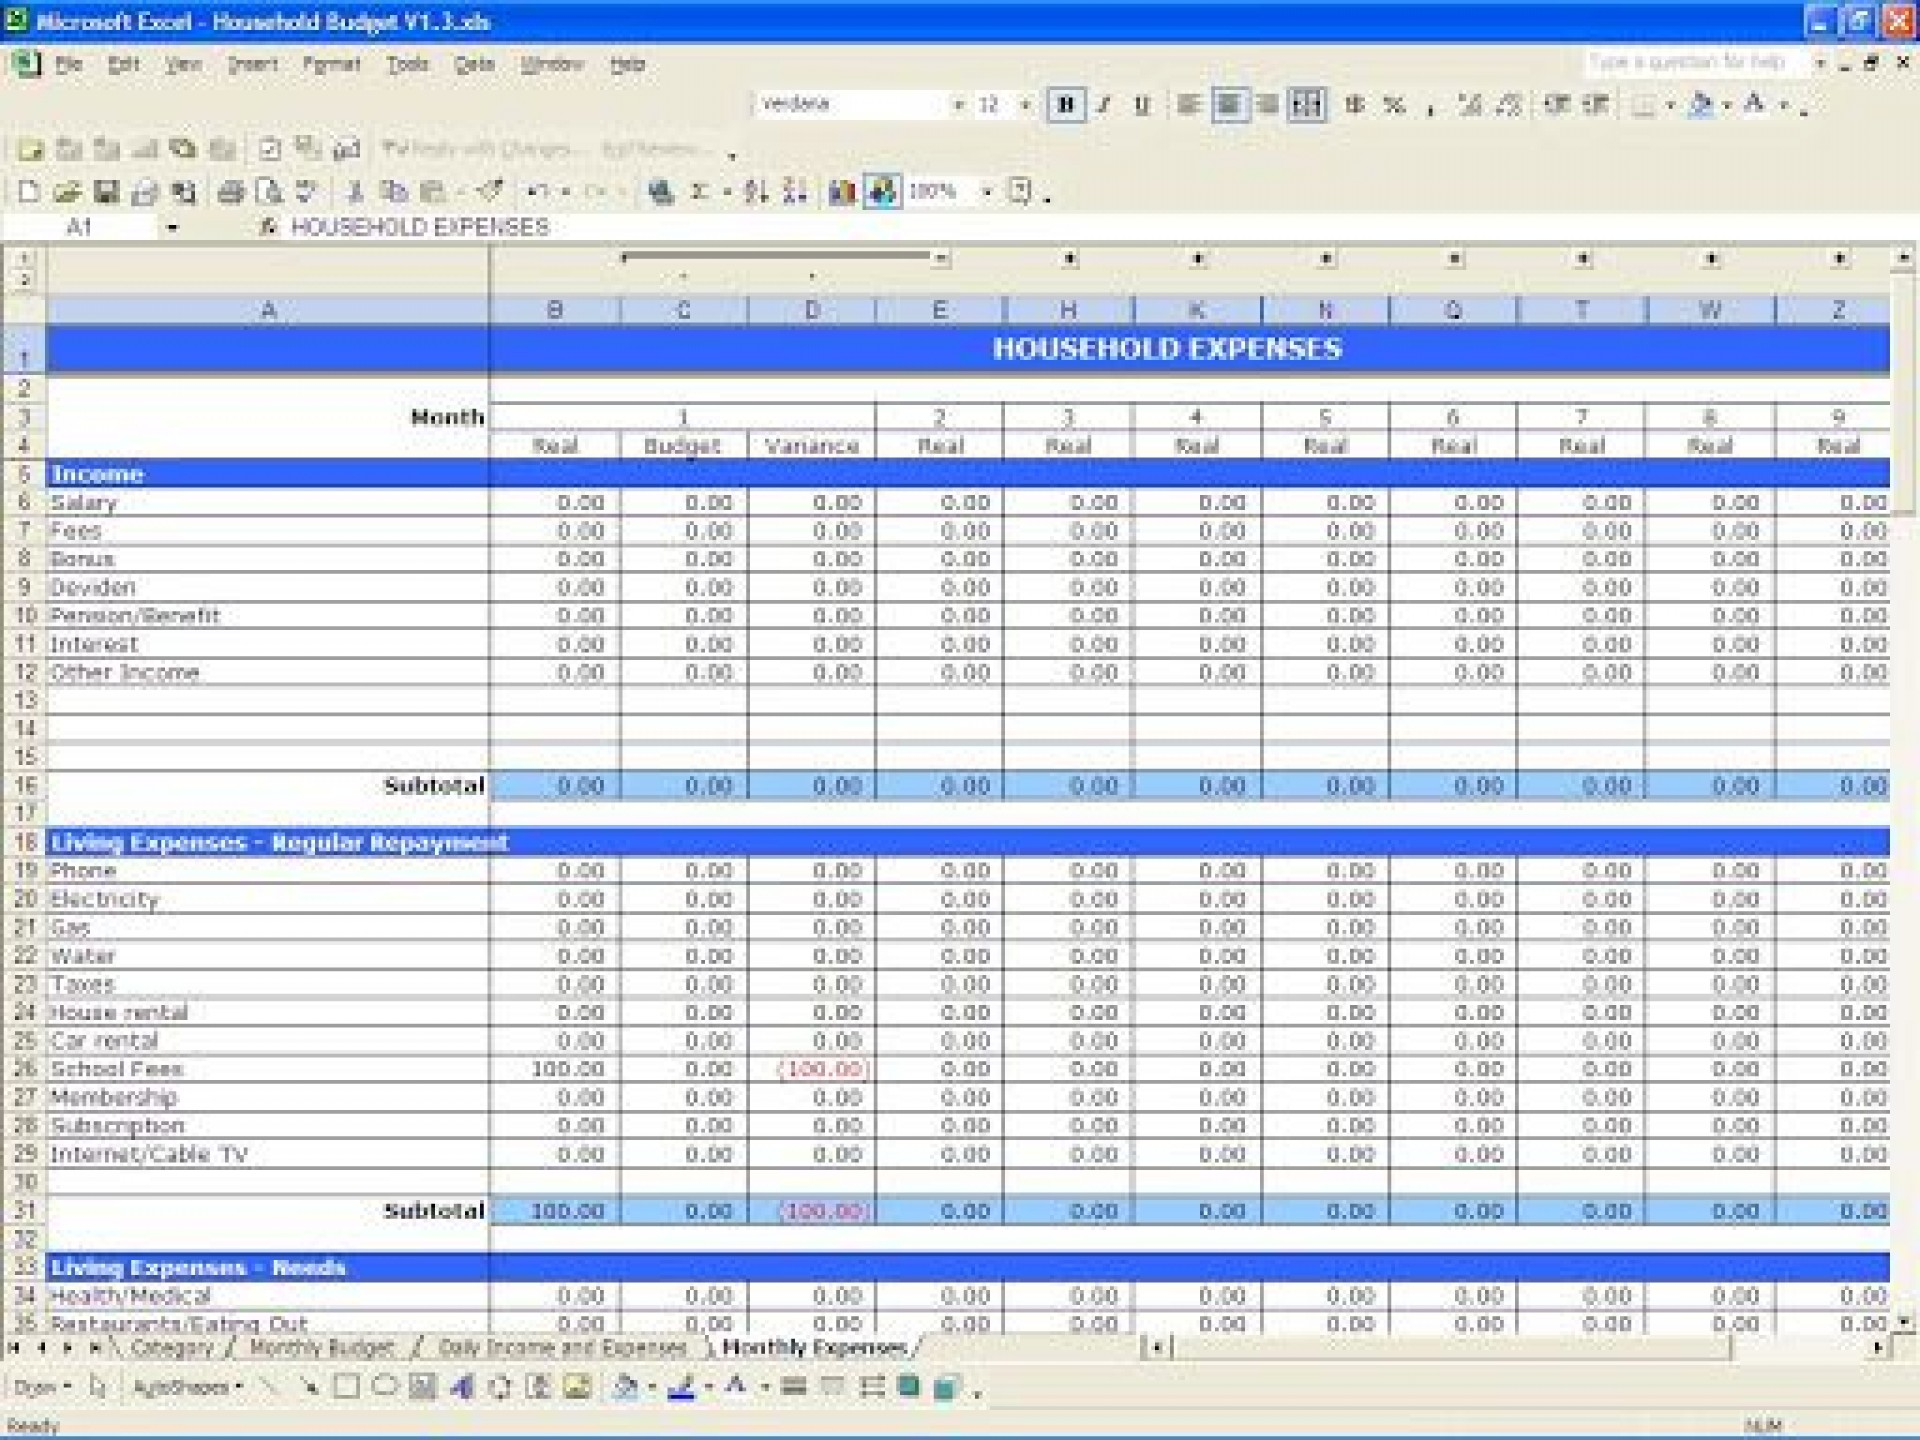 009 Excellent Simple Excel Budget Template Idea  Personal South Africa Household Free1920